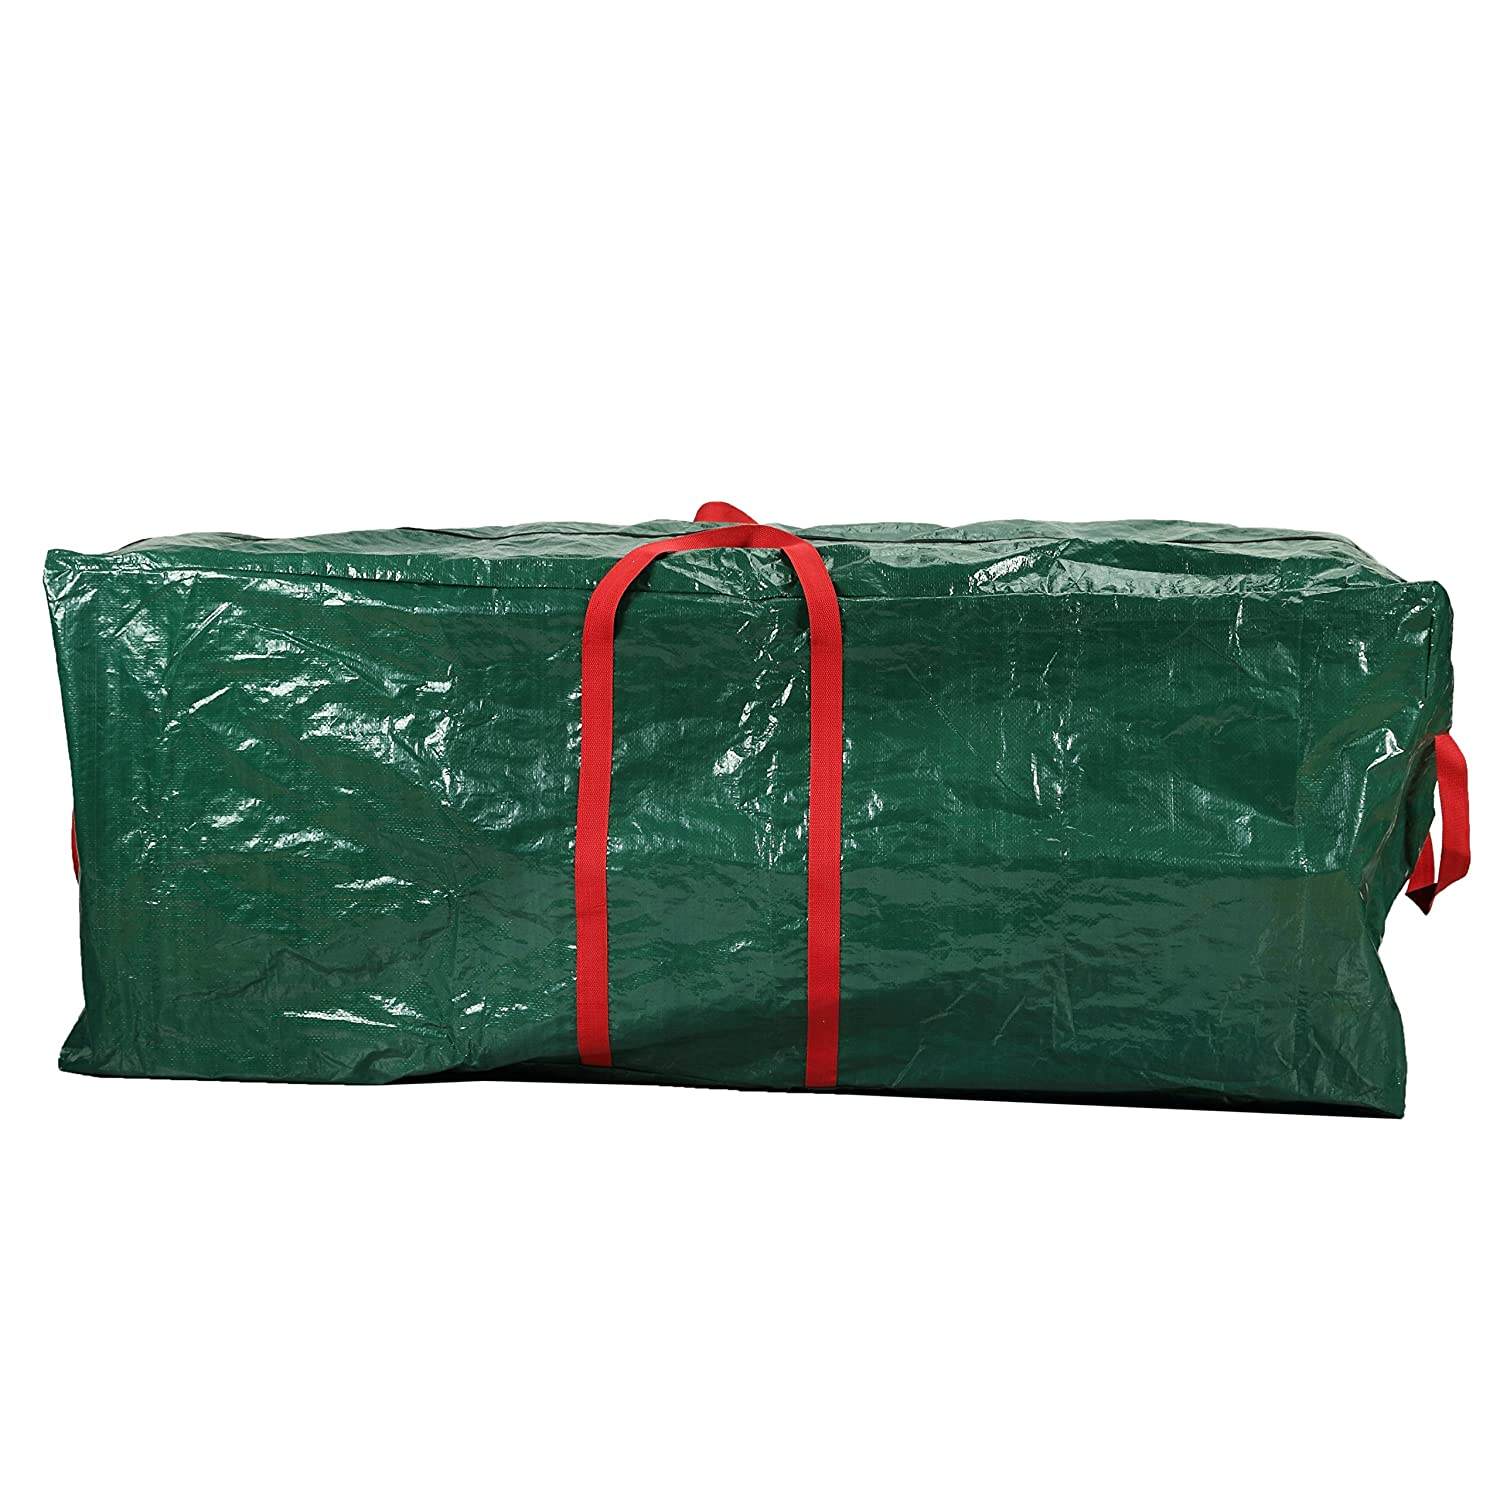 Heavy Duty Waterproof Holiday Tree Storage Bag Wreath Christmas Tree Decoration Accessories Storage Bag Tote Case to fit Artificial Trees Up to 59 Inch HFM09-C Hersent